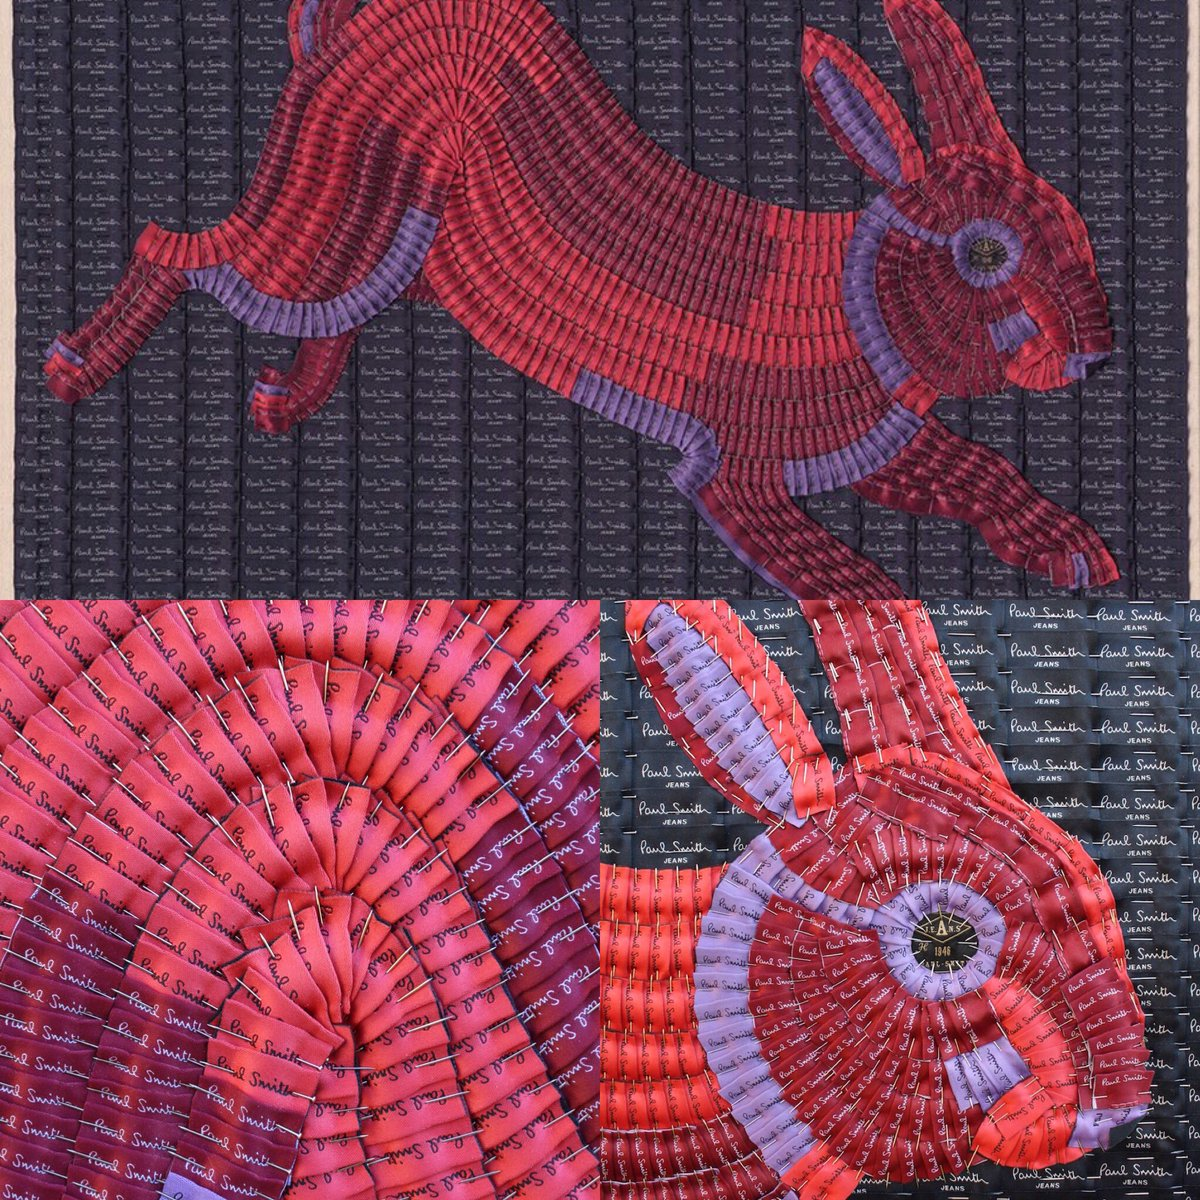 Red Rabbit with Paul Smith .jpg